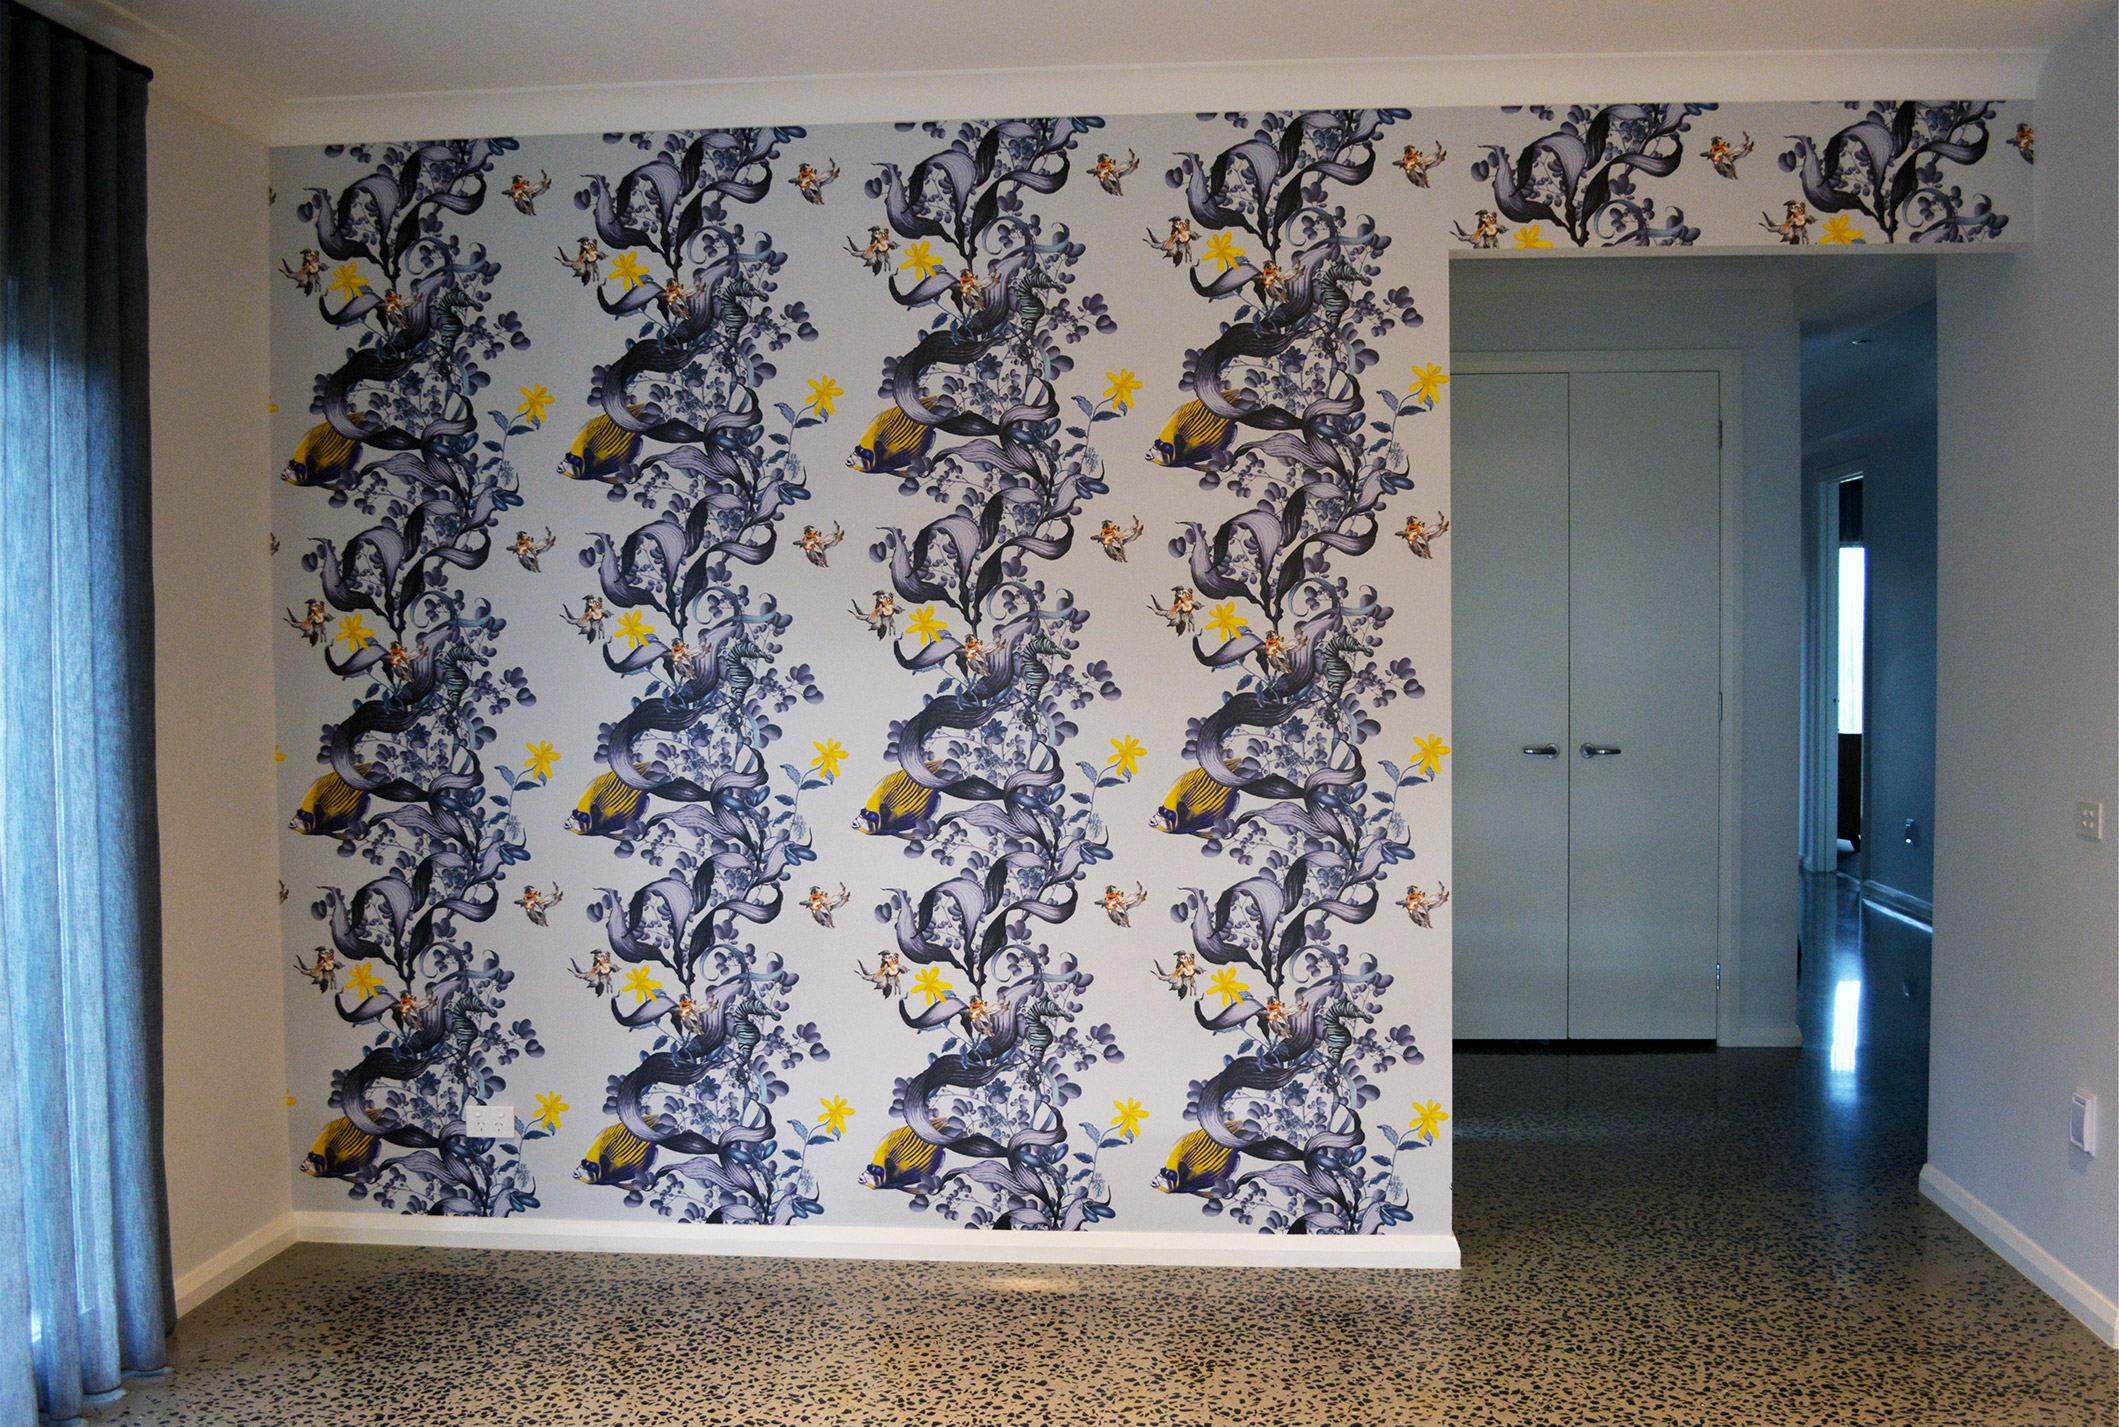 wallpaper installation of underwater wonderland installed by Prestige Wallpapering